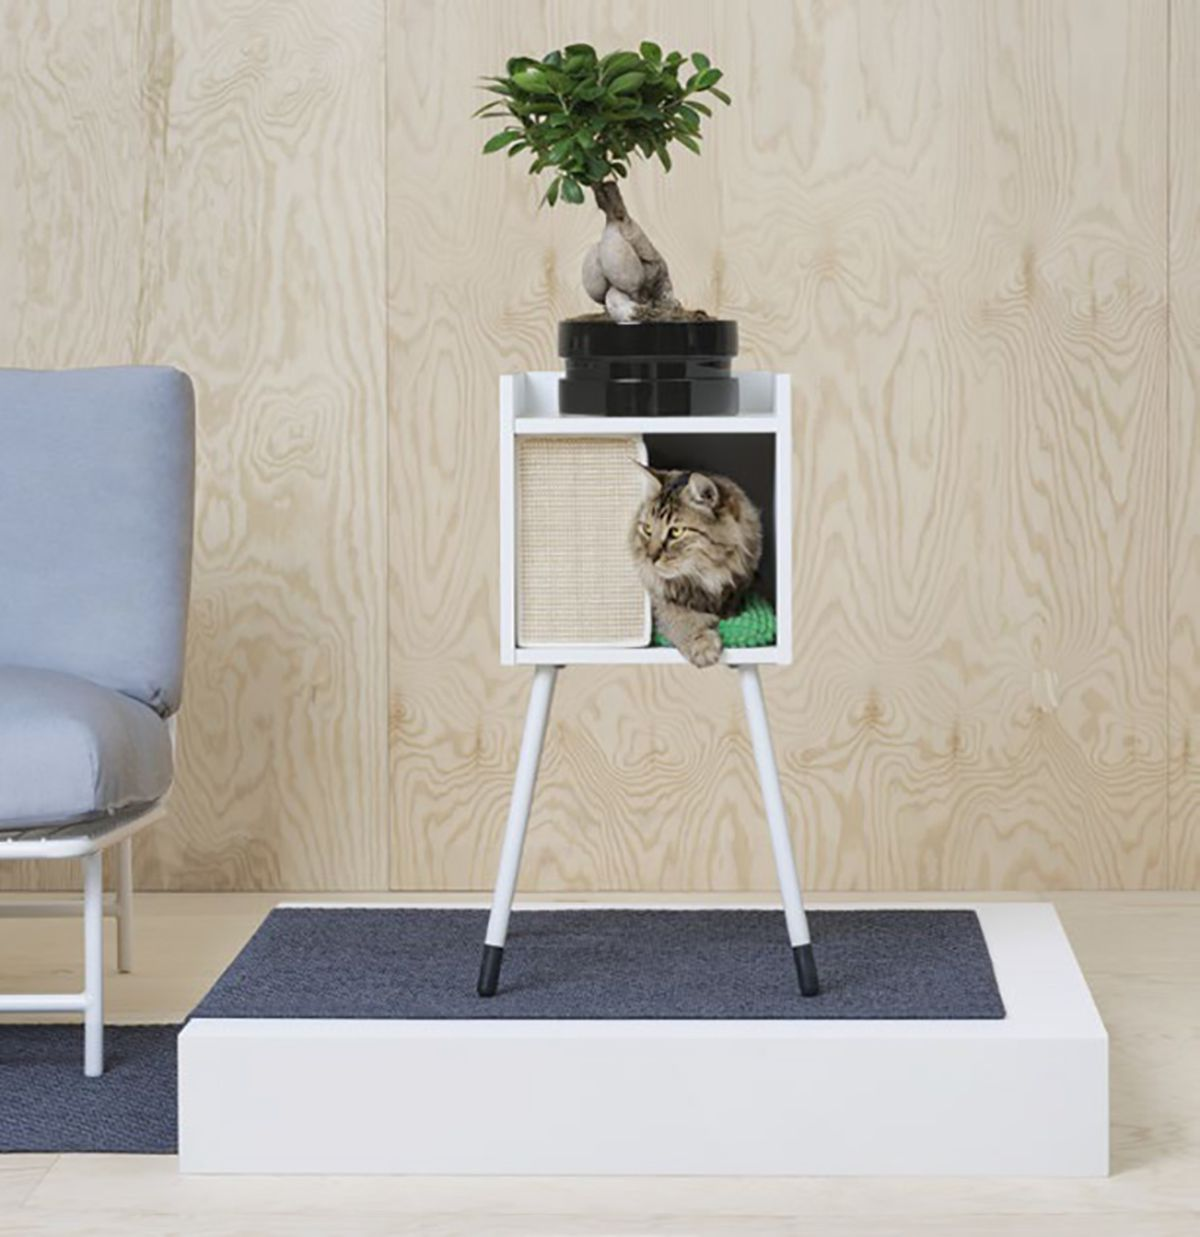 ikea launches pet furniture collection curbed. Black Bedroom Furniture Sets. Home Design Ideas